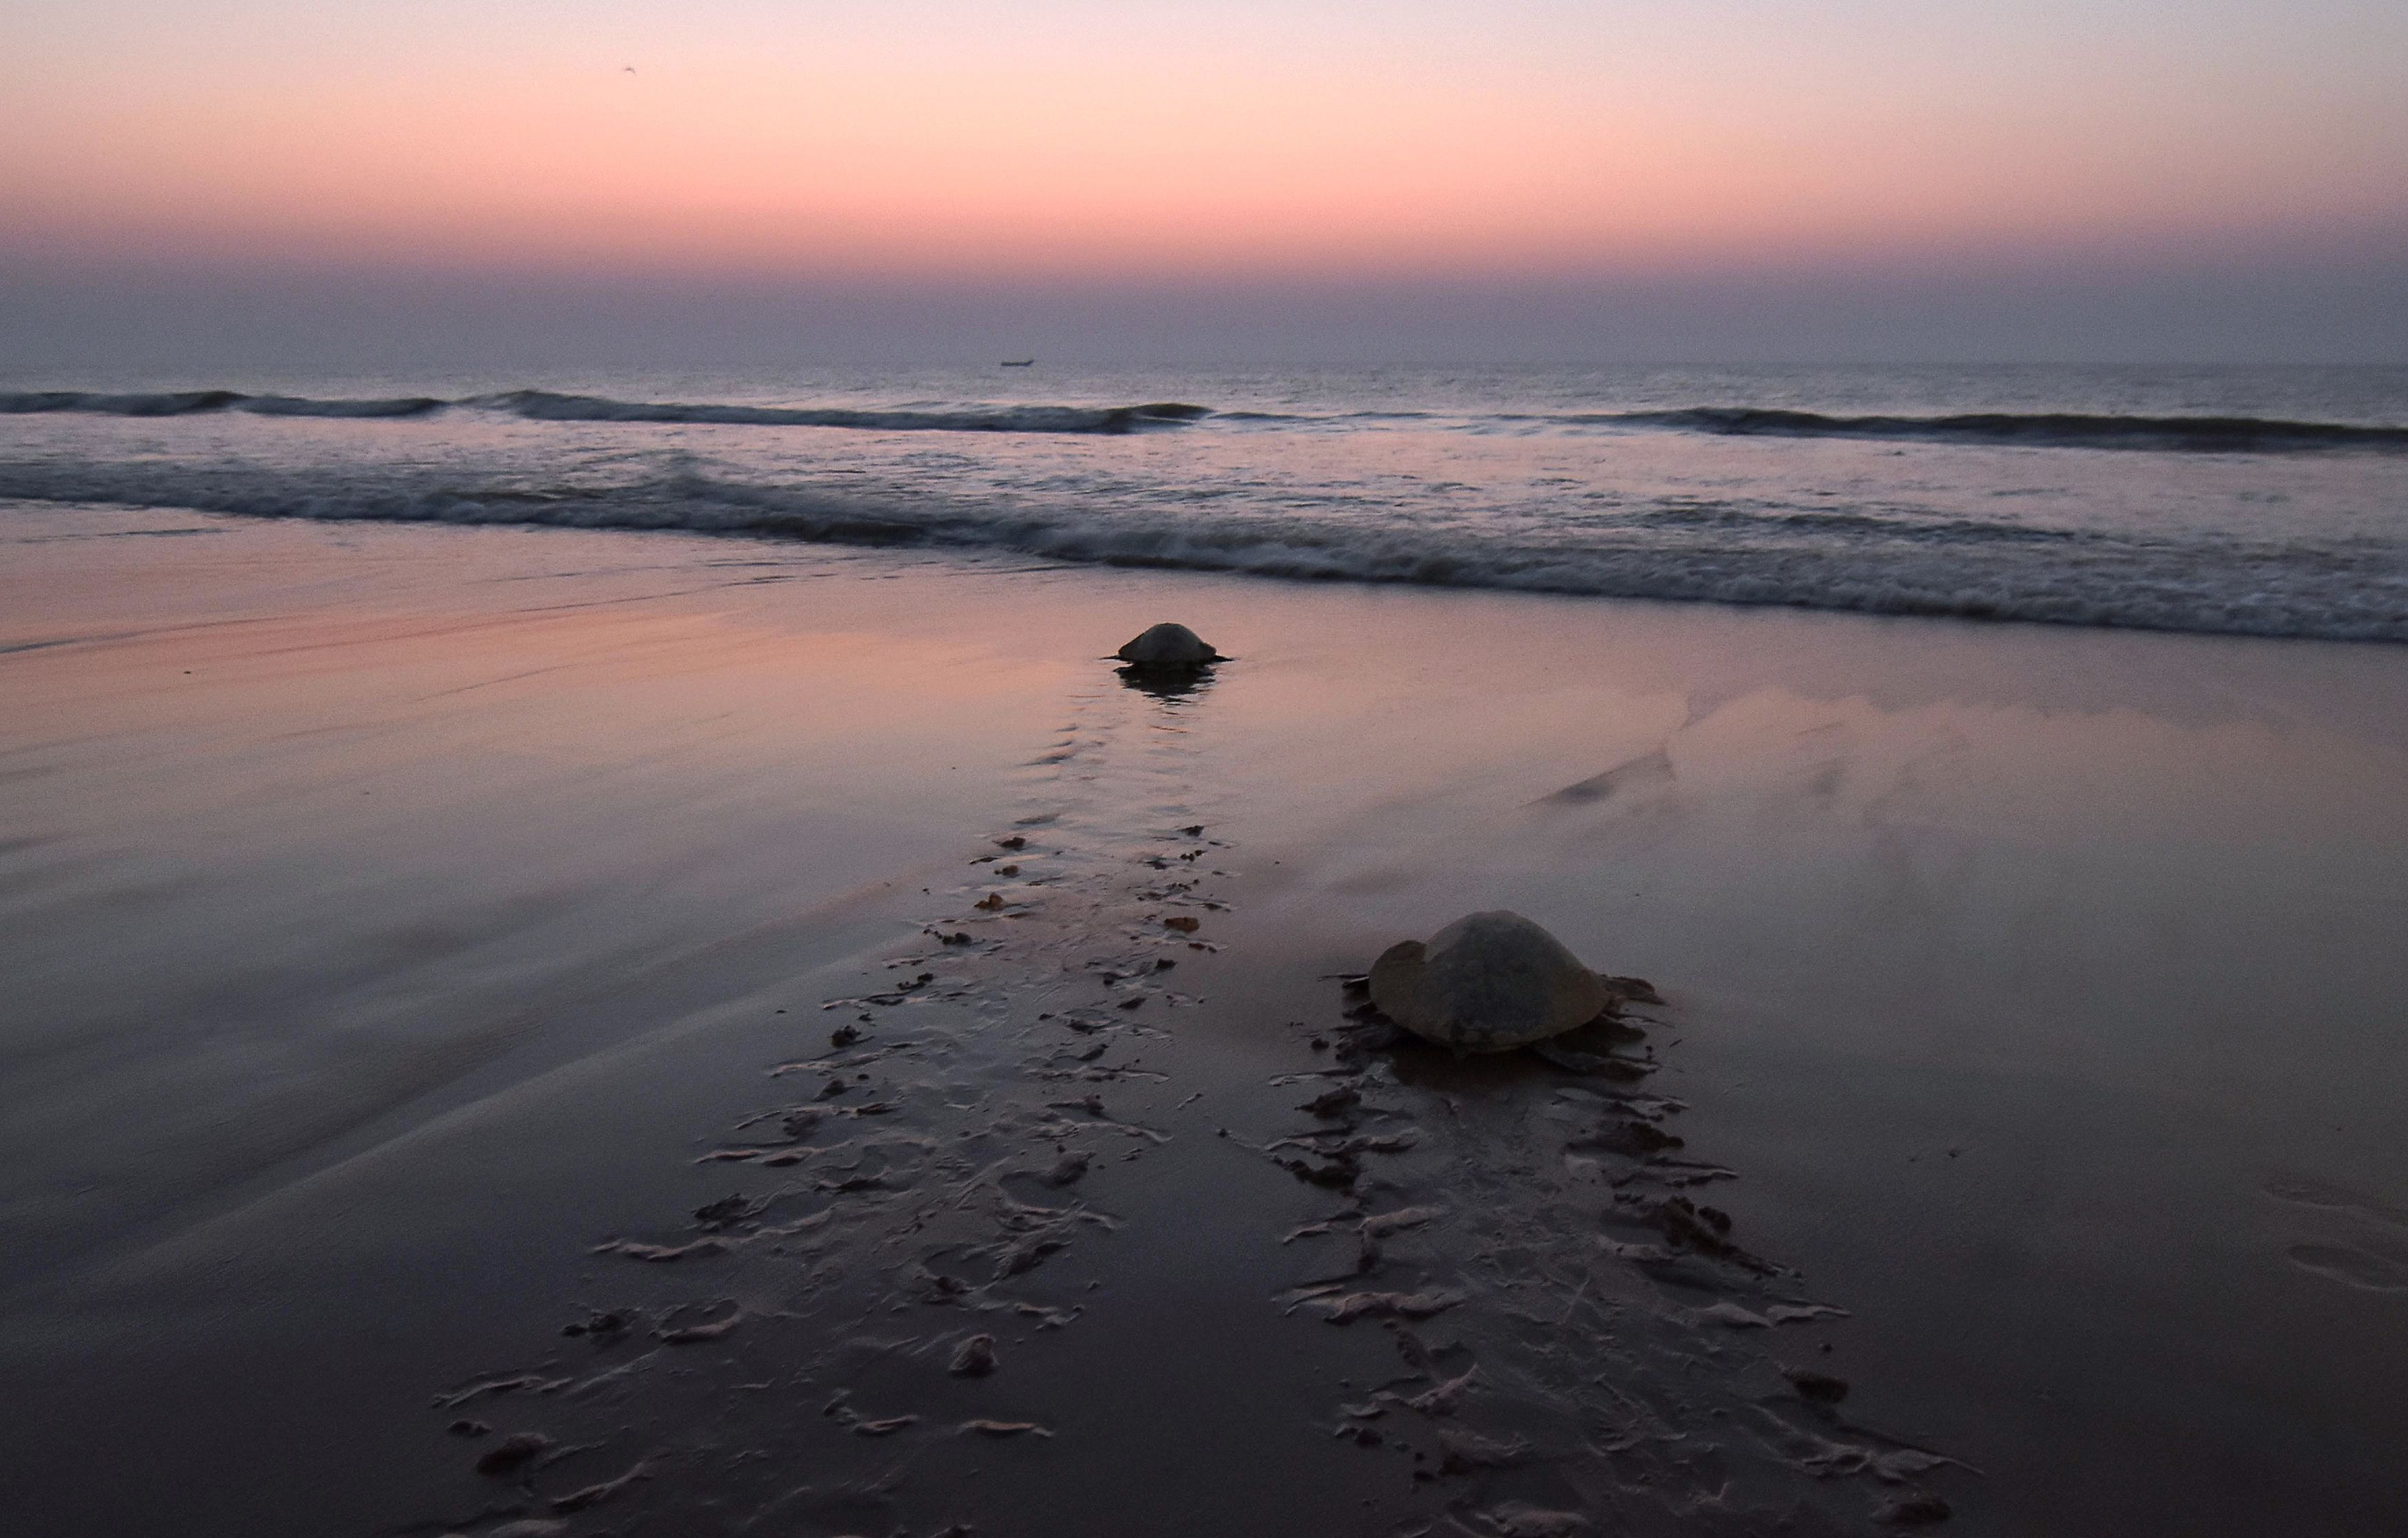 sea turtle on the beach in india